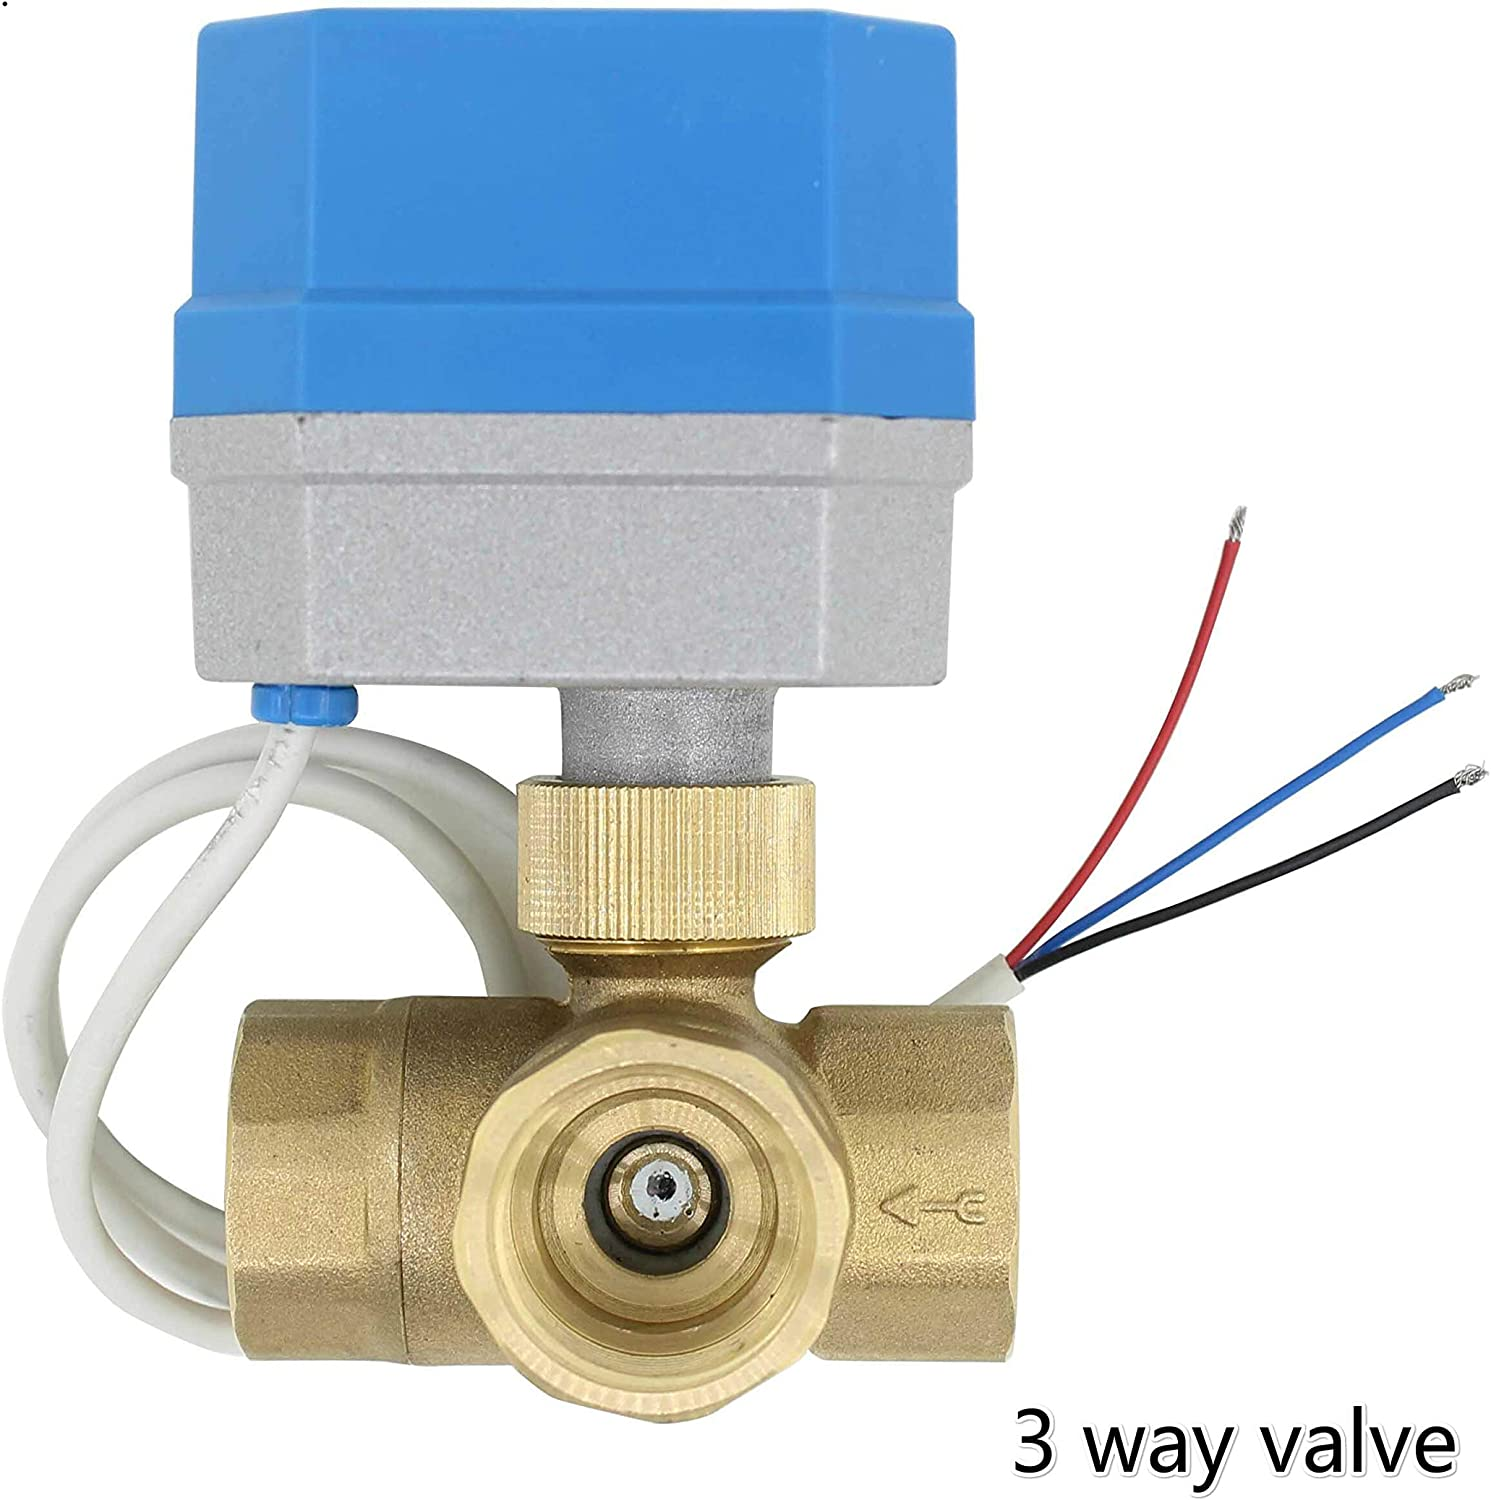 no-branded 2 Way 3way Brass Valve Motorized Ball Valve Electric Ball Valve Electric Actuator Connectors Accessories Valve ZYUS Specification : DC12V, Voltage : DN15